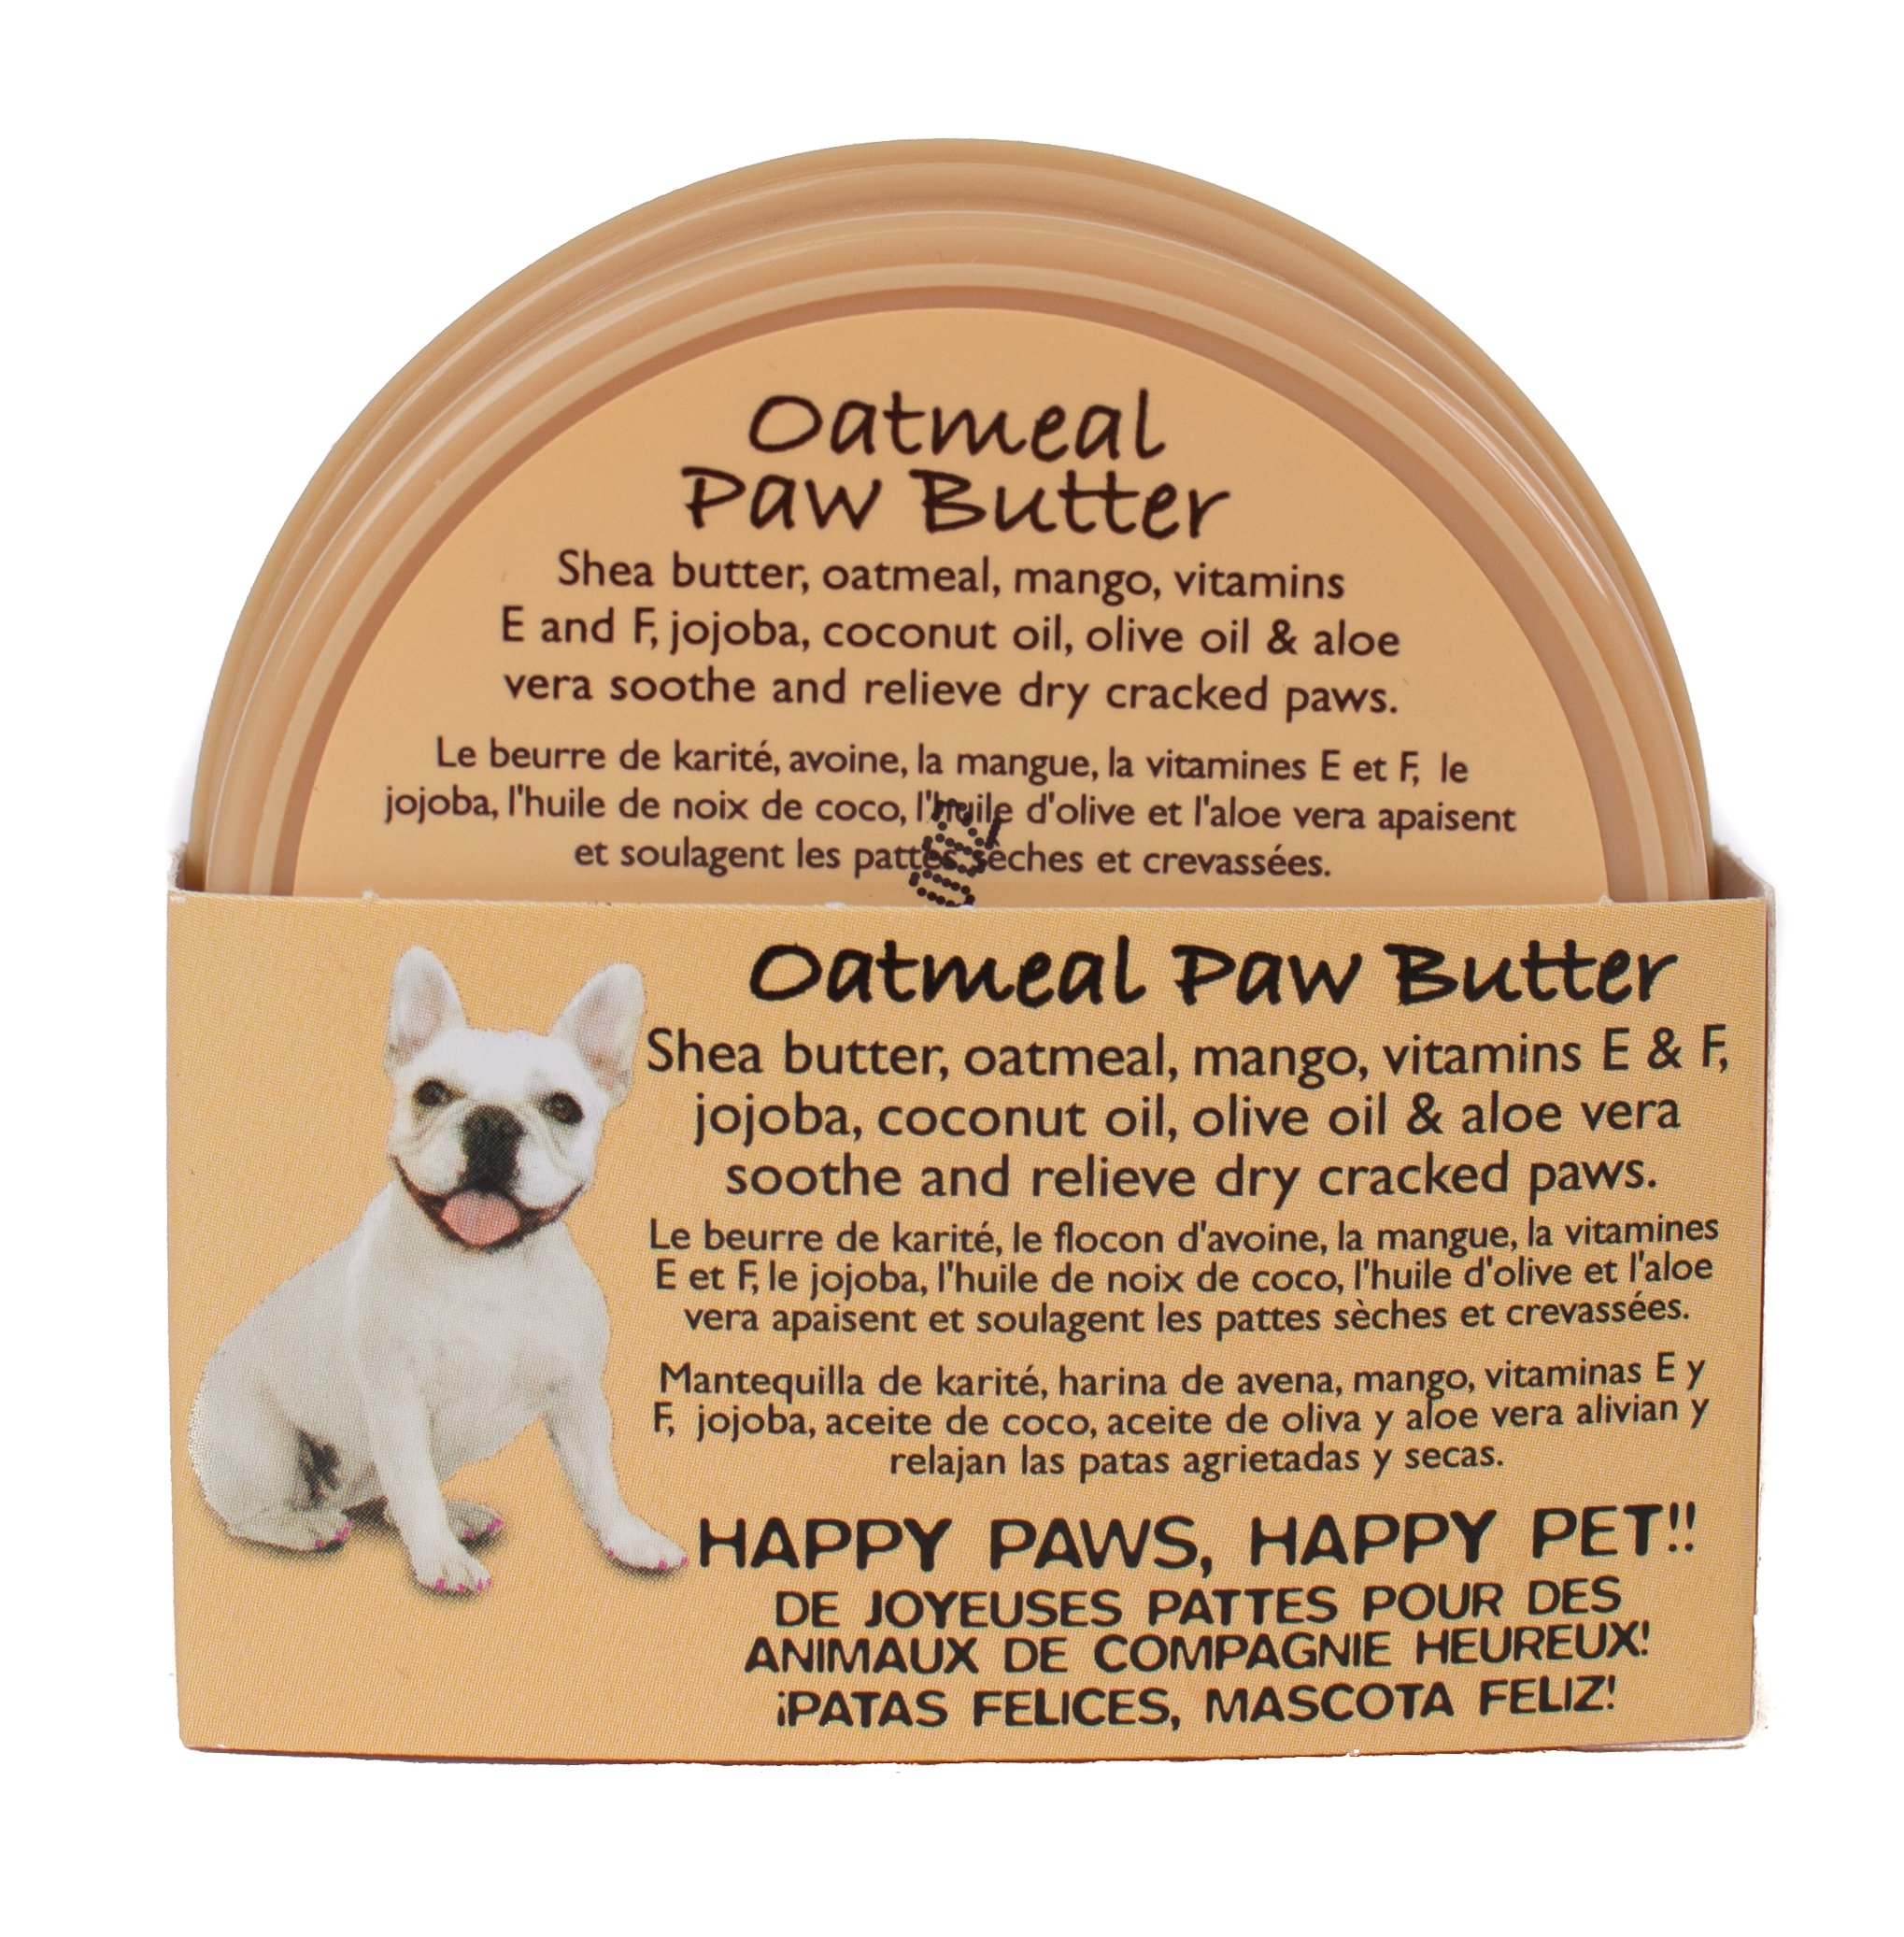 OATMEAL-SCENTED-Pet-Head-Paw-Butter-is-a-paw-moisturizer-made-with-the-delicious-scent-of-Oatmeal-Every-use-youll-enjoy-the-sweet-but-subtle-smell-of-fresh-oatmeal-cookies-that-stays-put-on-your-dog-o